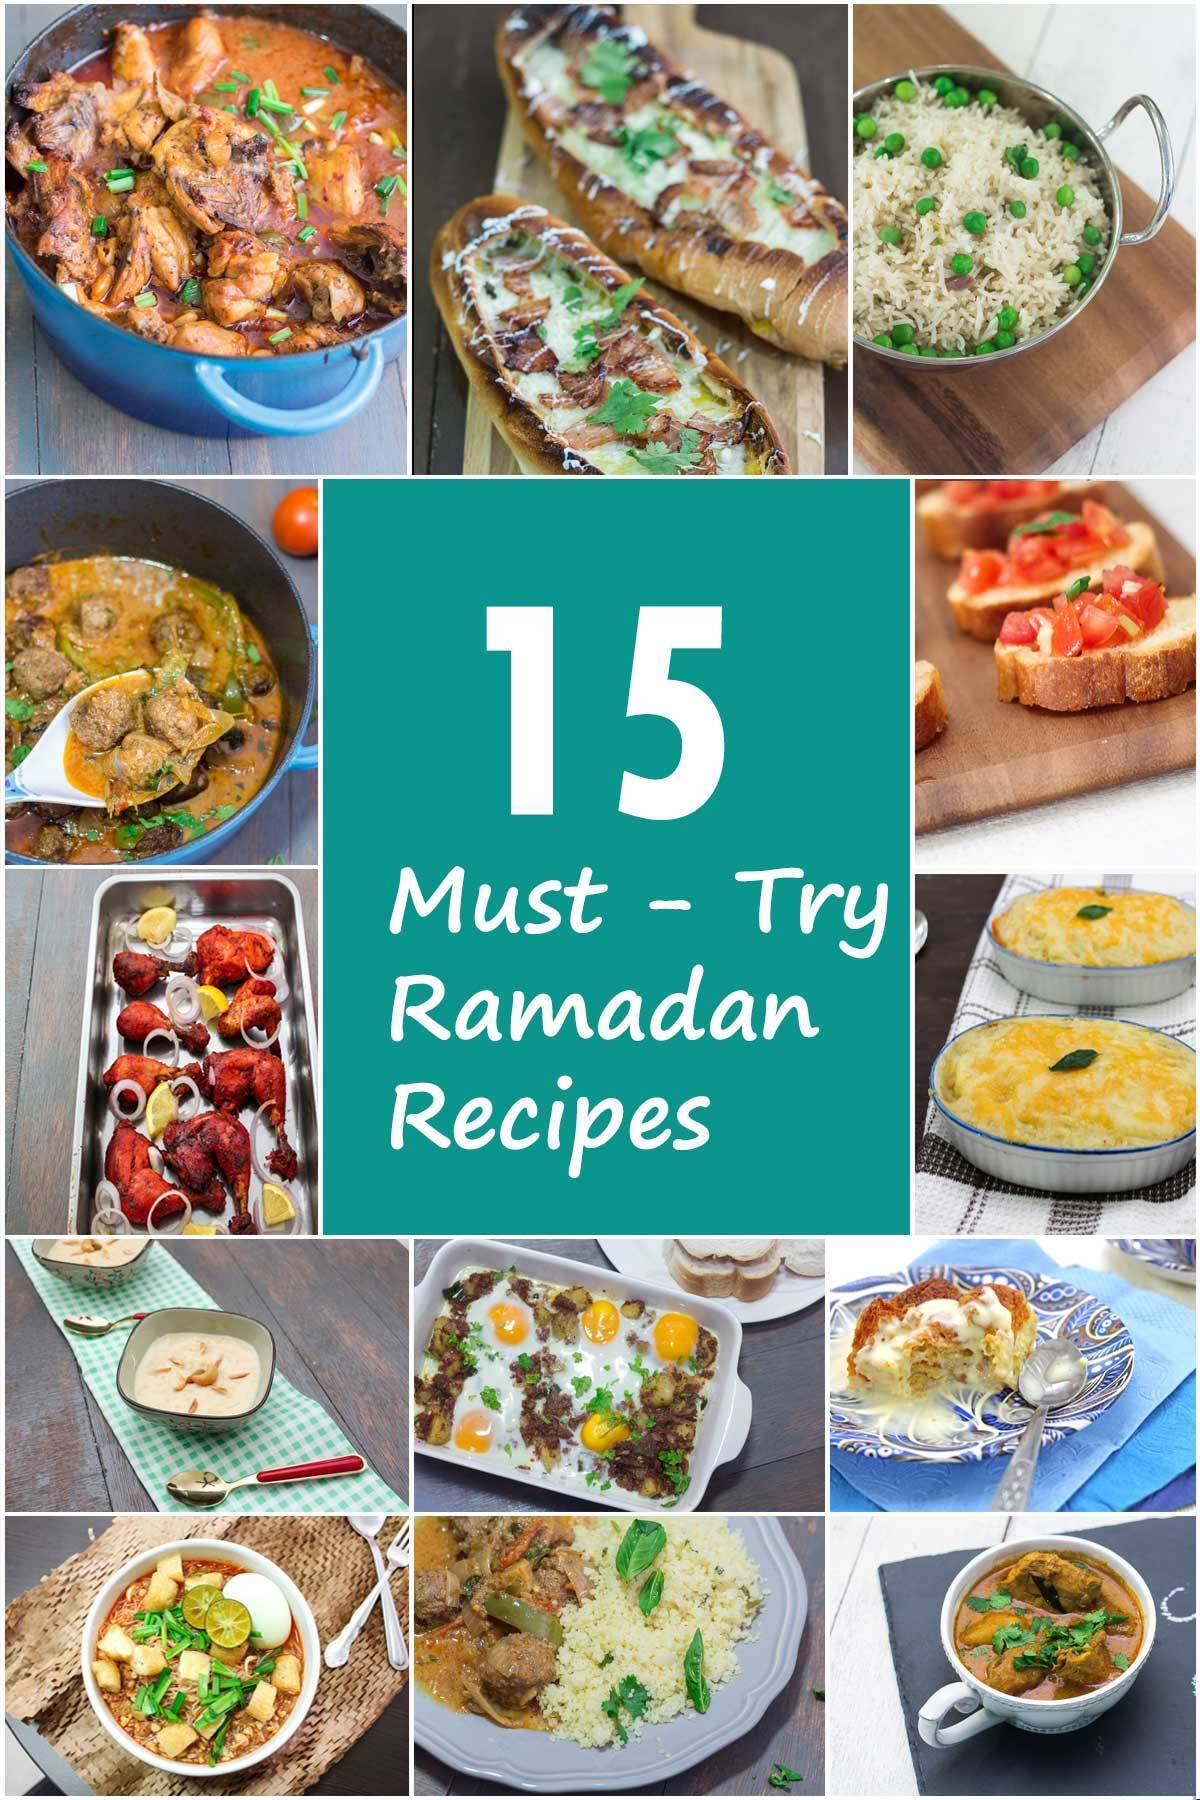 15 Must Try Ramadan Recipes